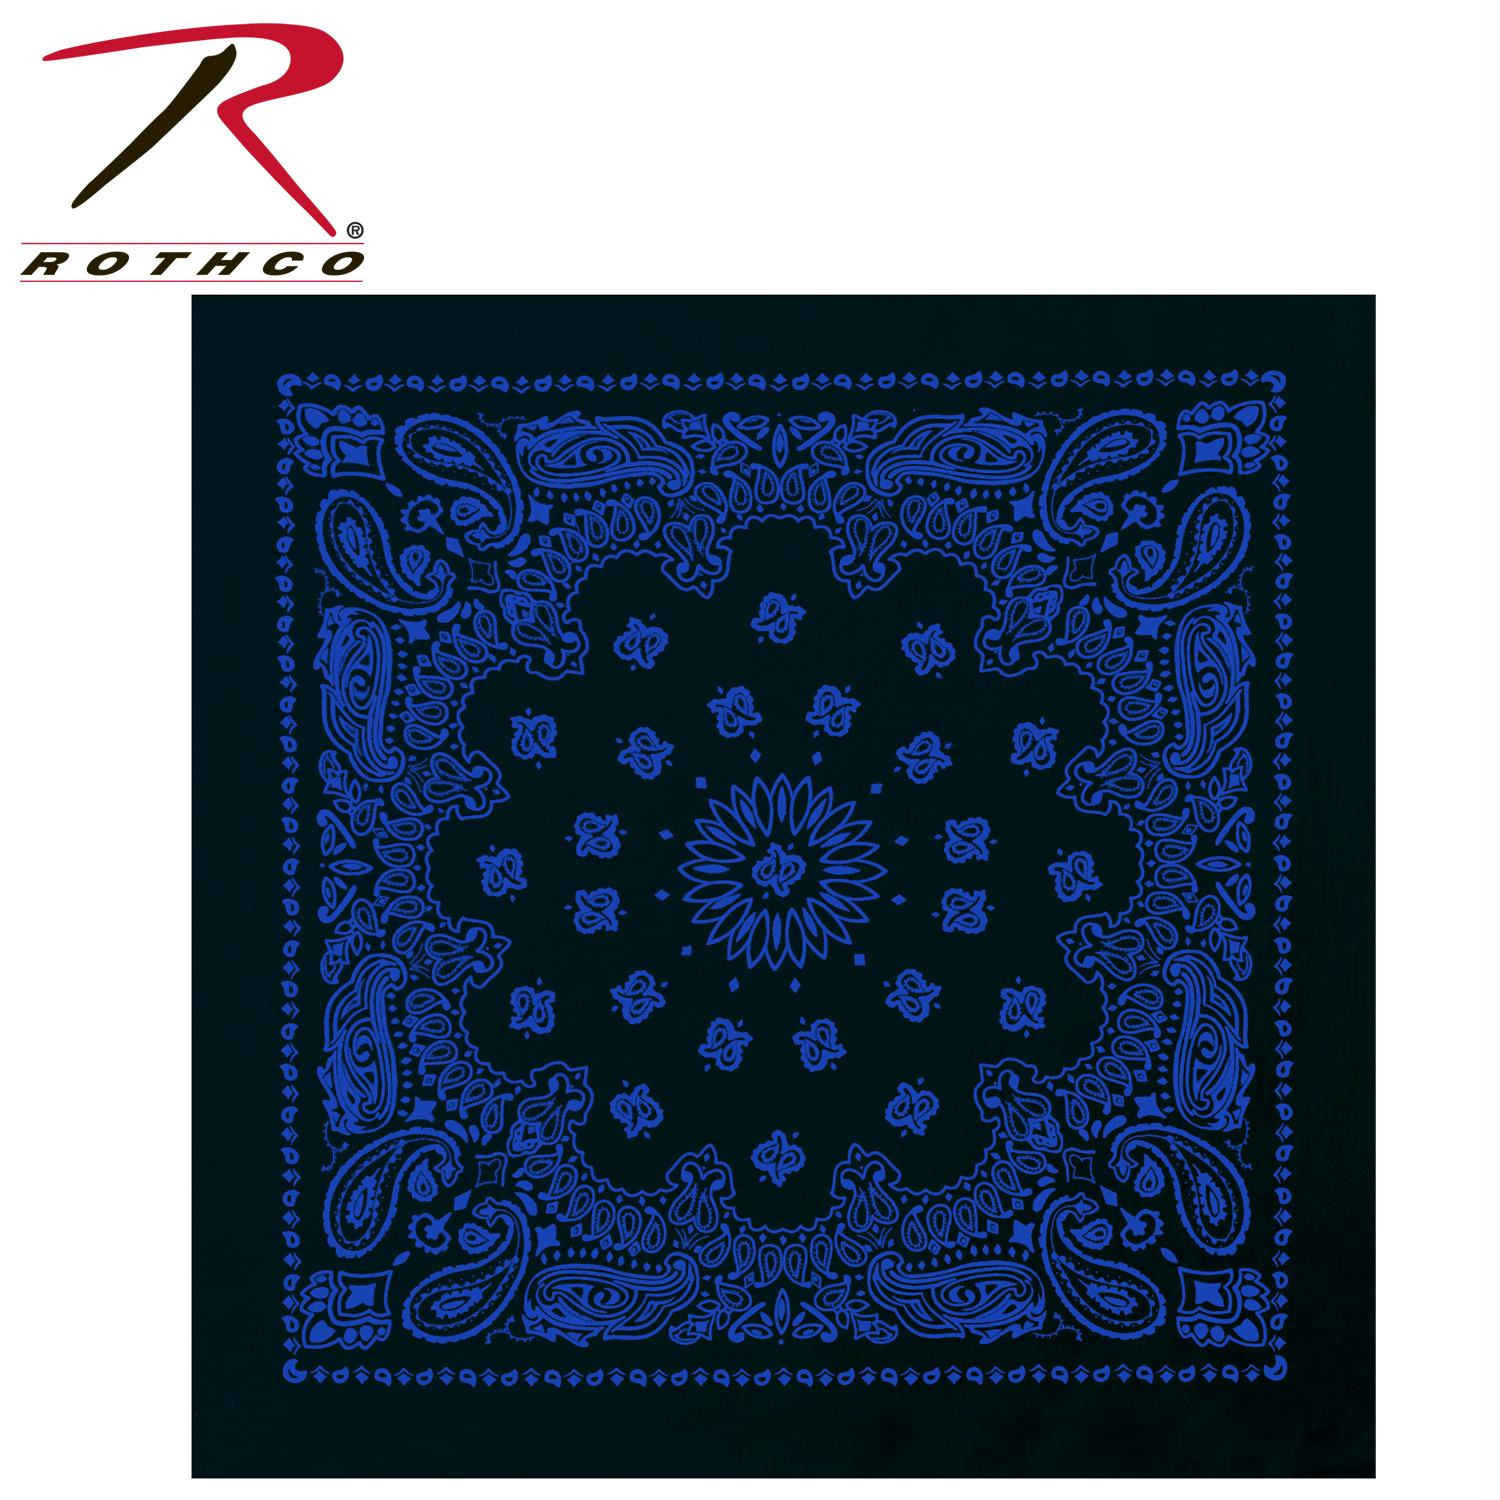 Rothco Trainmen Bandana - Black / Blue